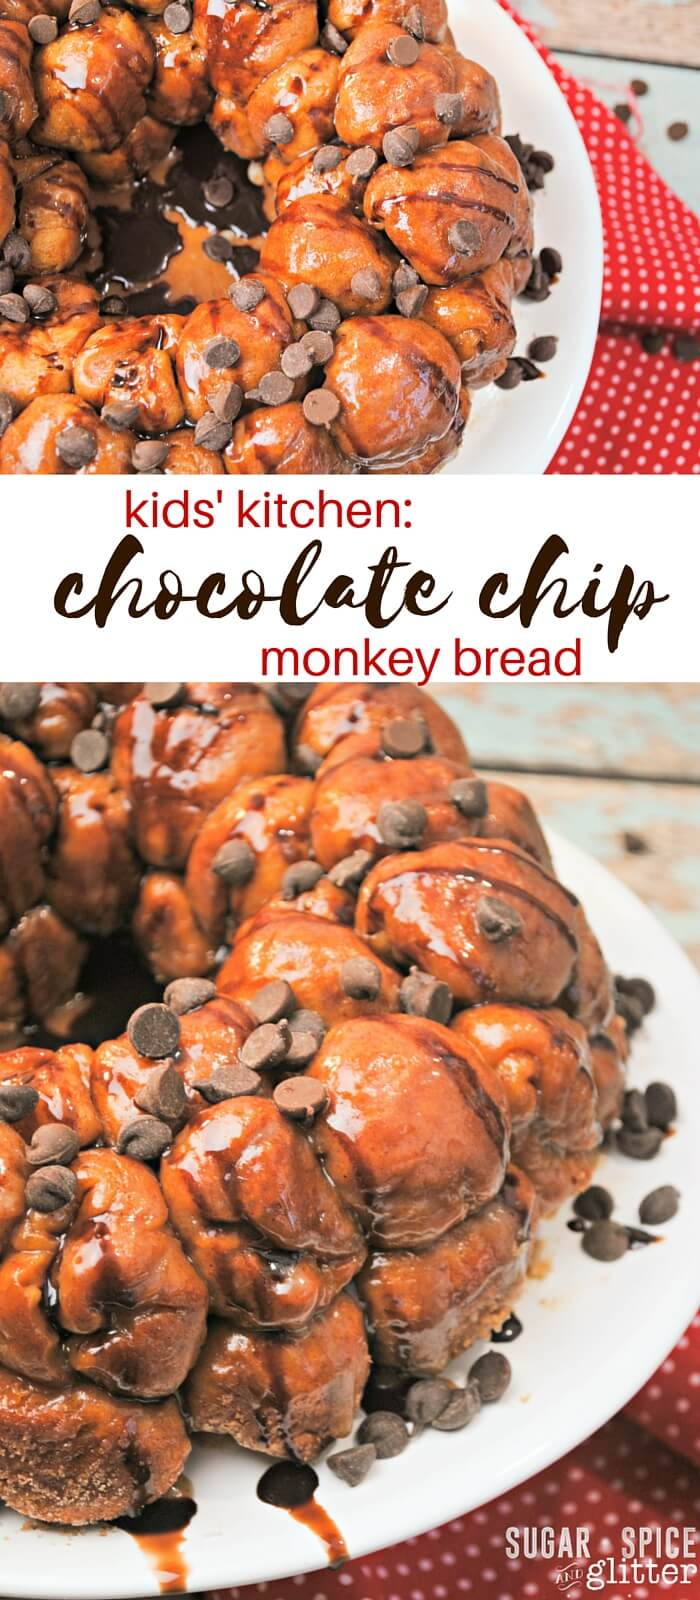 Kids' kitchen is excited to share with you another cooking with kids dessert! Chocolate chip monkey bread is an easy dessert recipe made with simple ingredients. This pull apart bread is perfect for family movie nights or as a quick treat for your next get together.